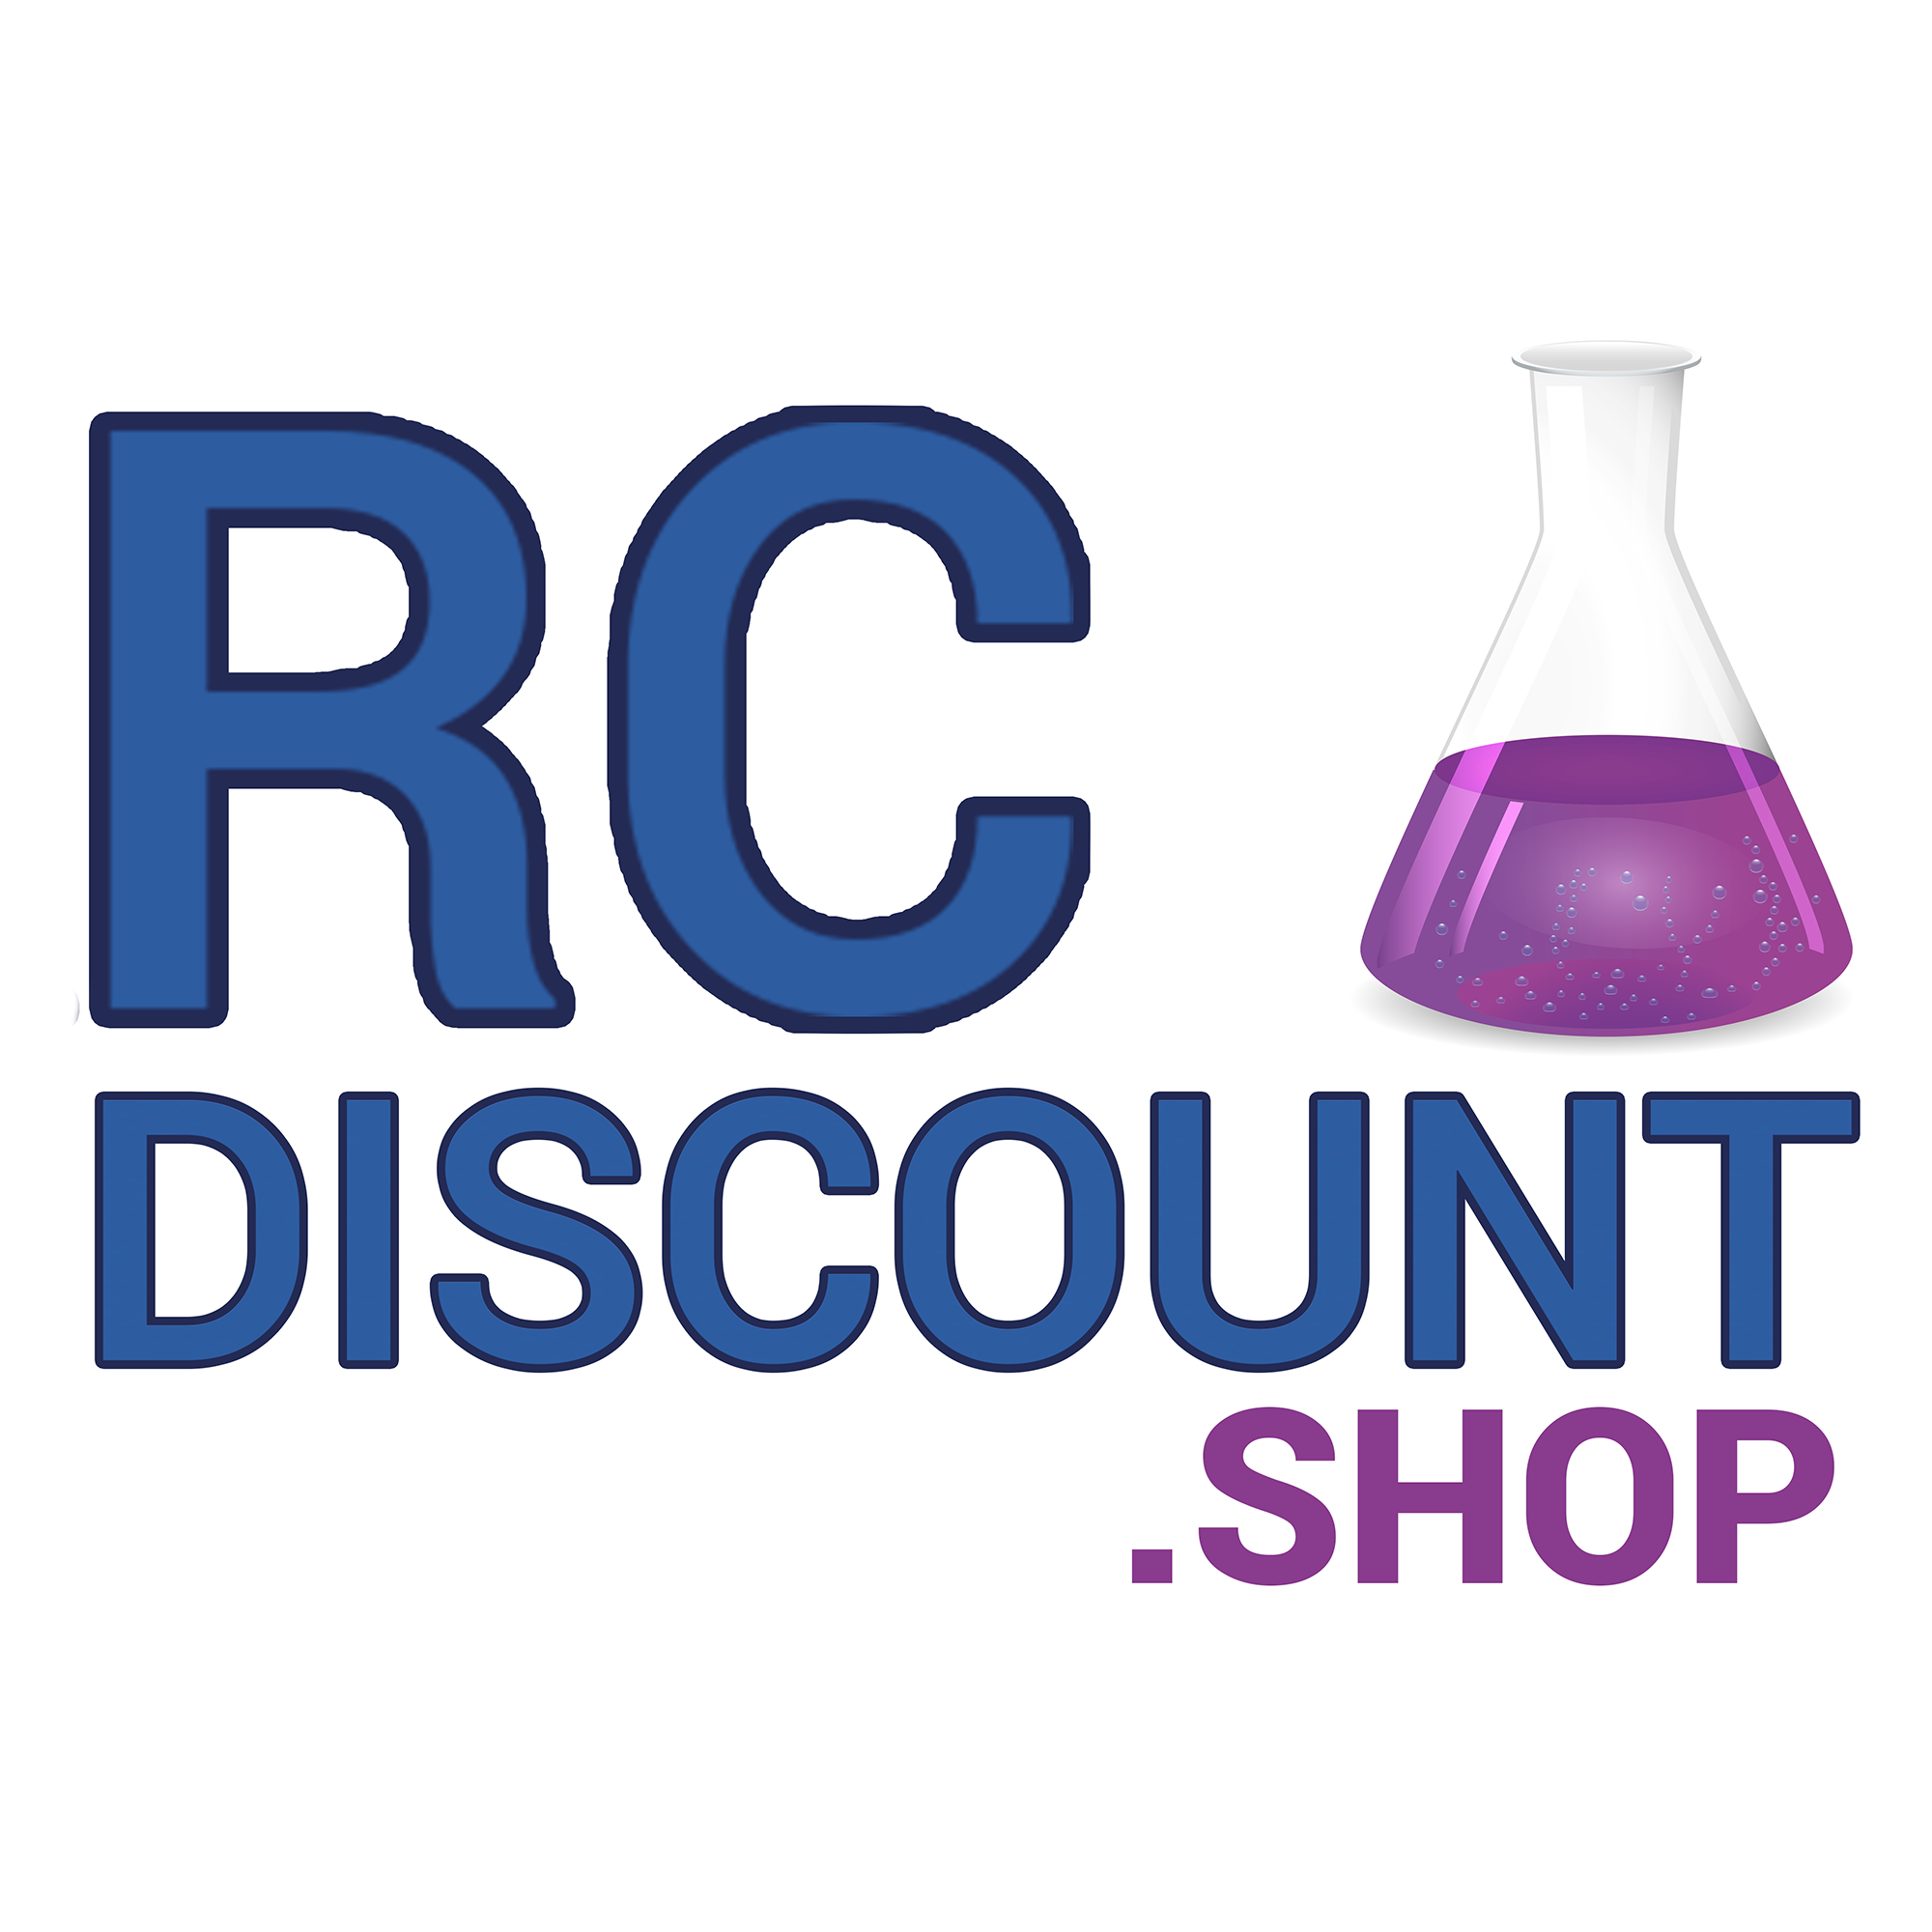 DIscounted Research Chemicals Shop